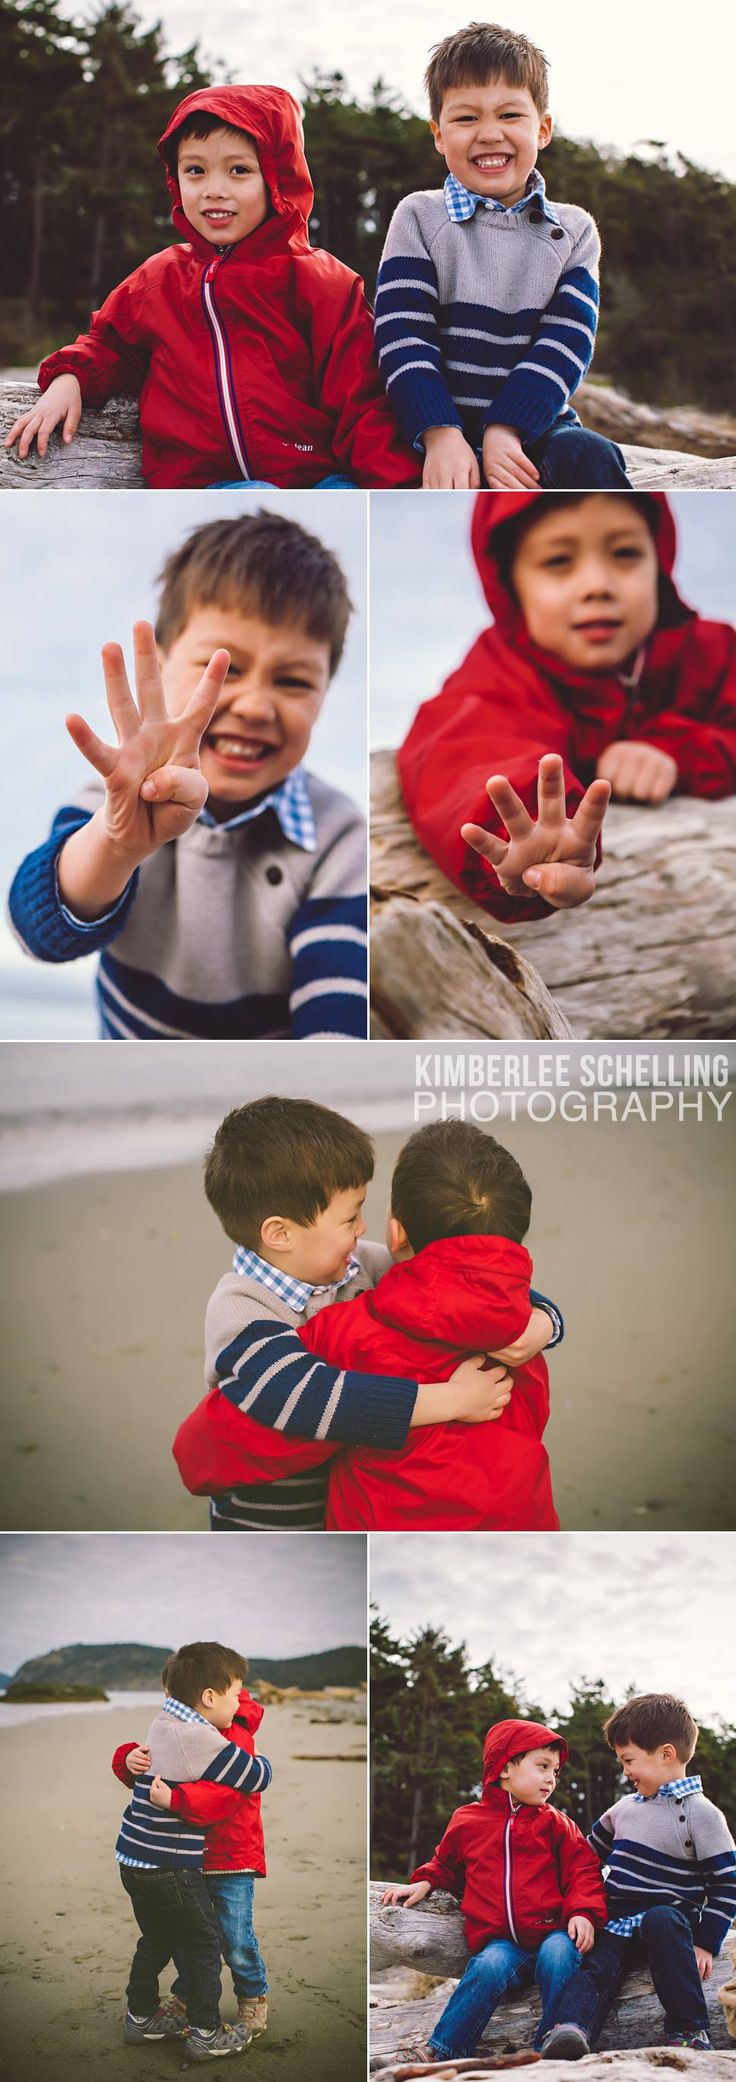 The 43 best Family Photography images on Pinterest | Photo shoots ...